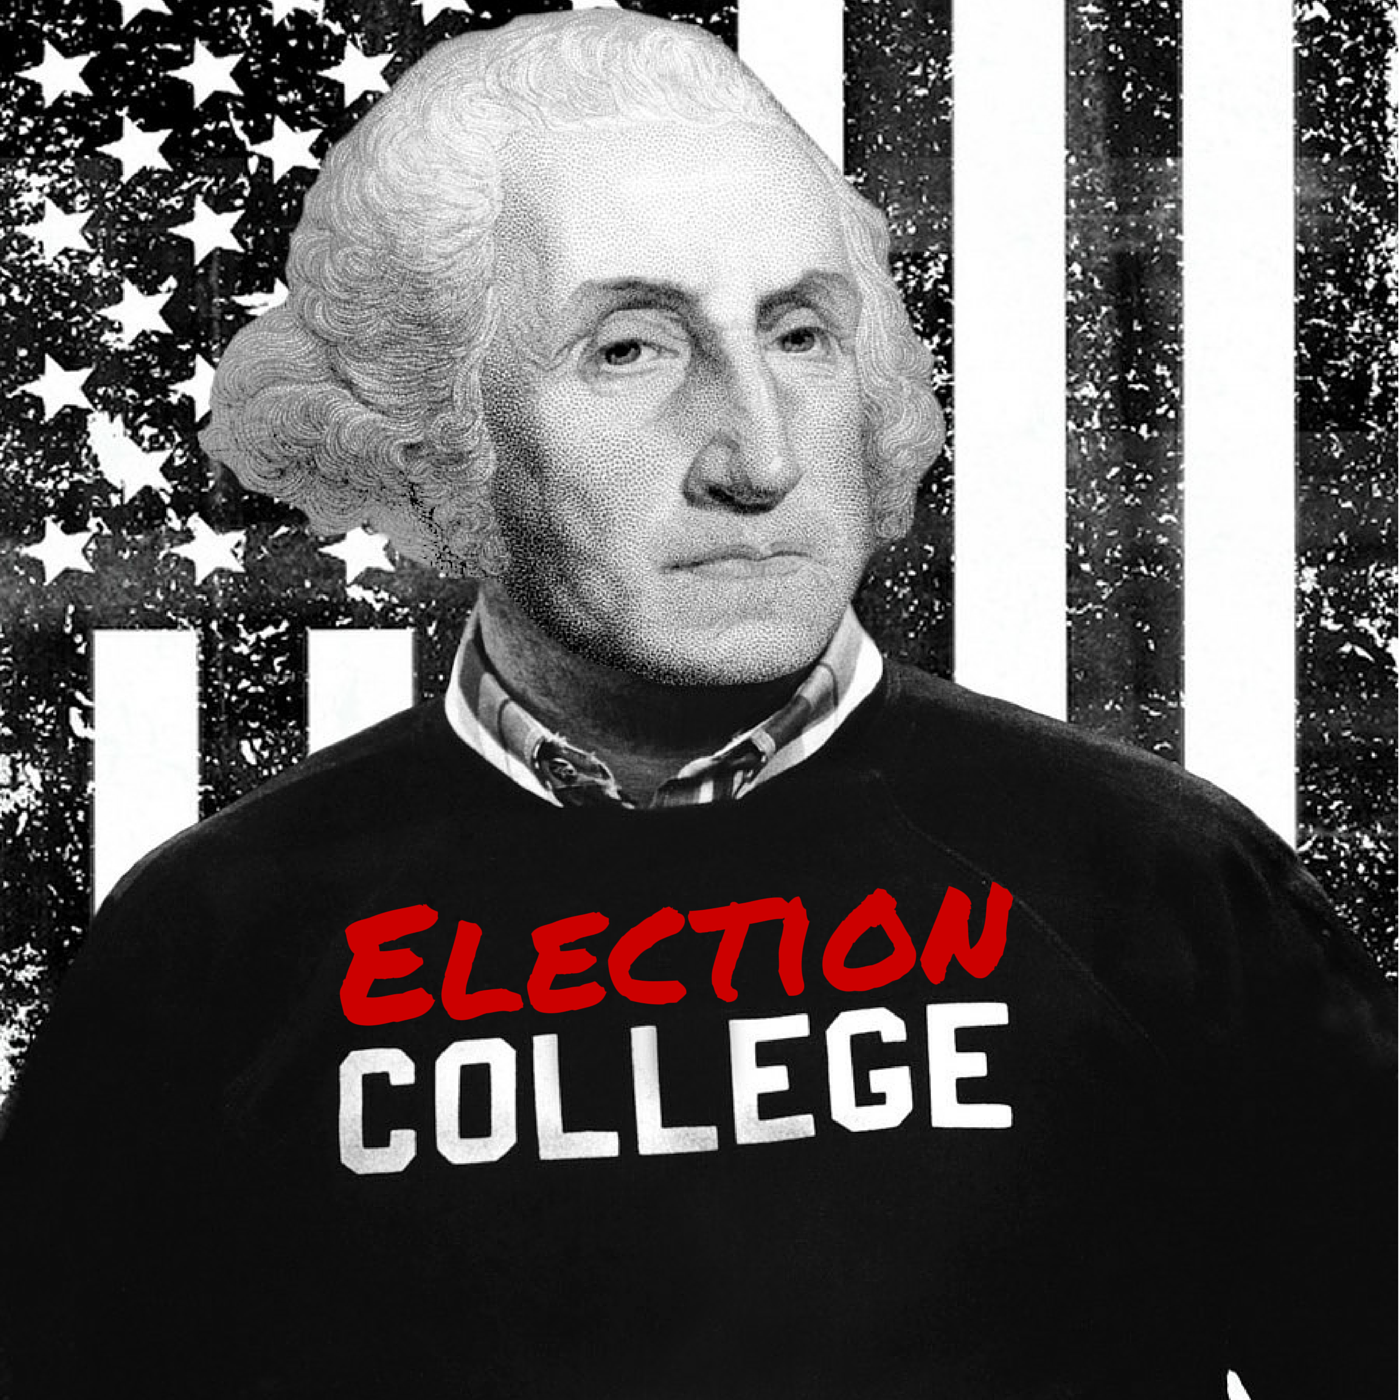 The Democrats Finally Win Two In A Row - Election of 1996 | Episode #073 | Election College: United States Presidential Election History